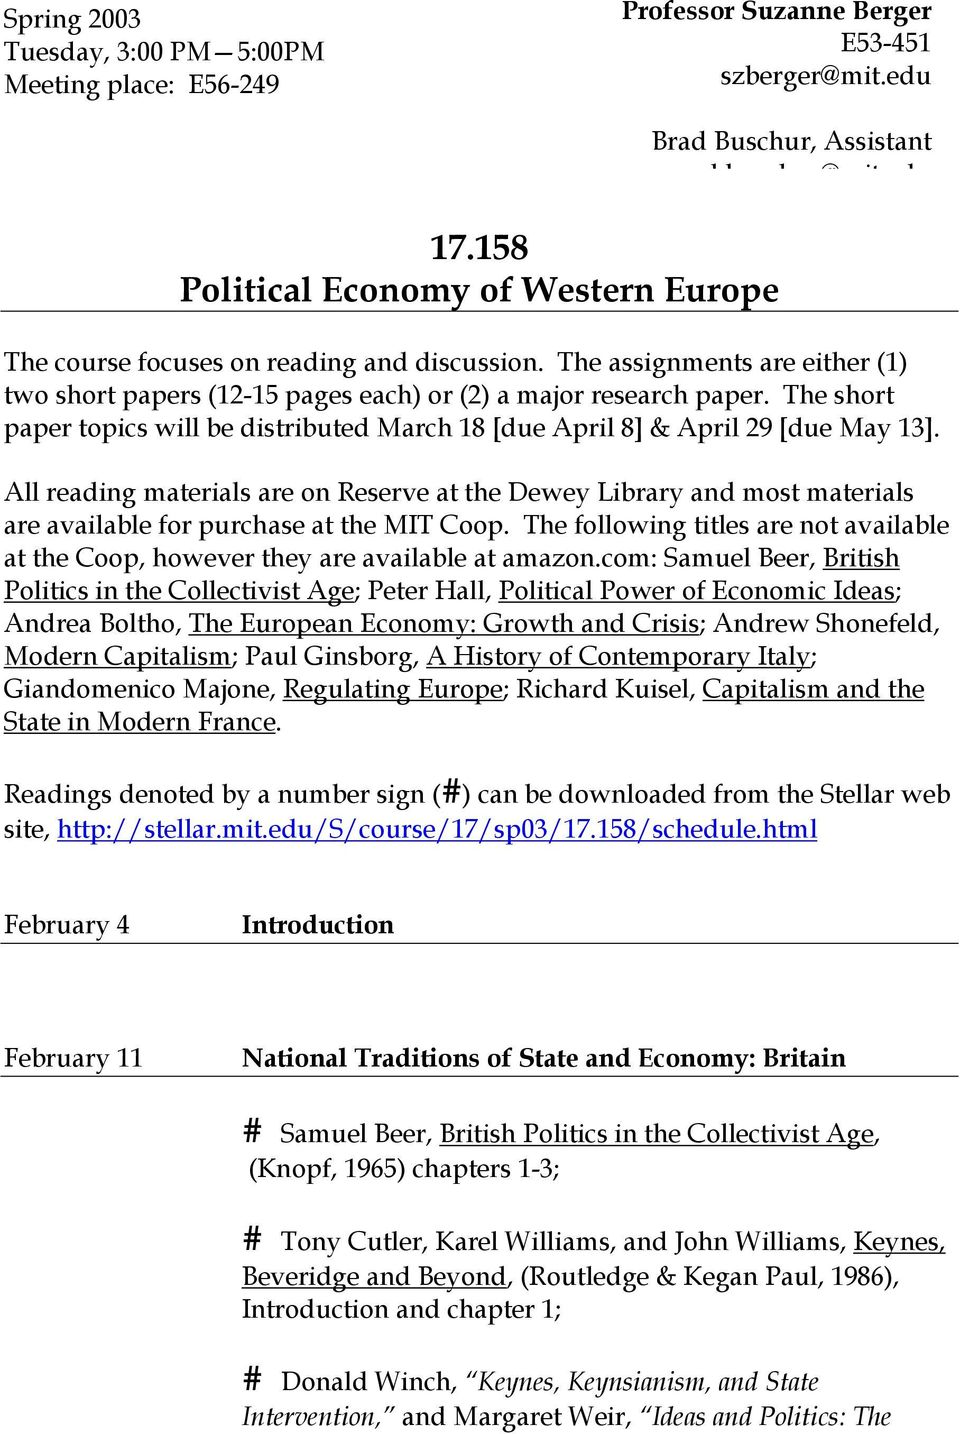 021 Research Paper Political Economy Topics Page 1 Awesome International Global Full